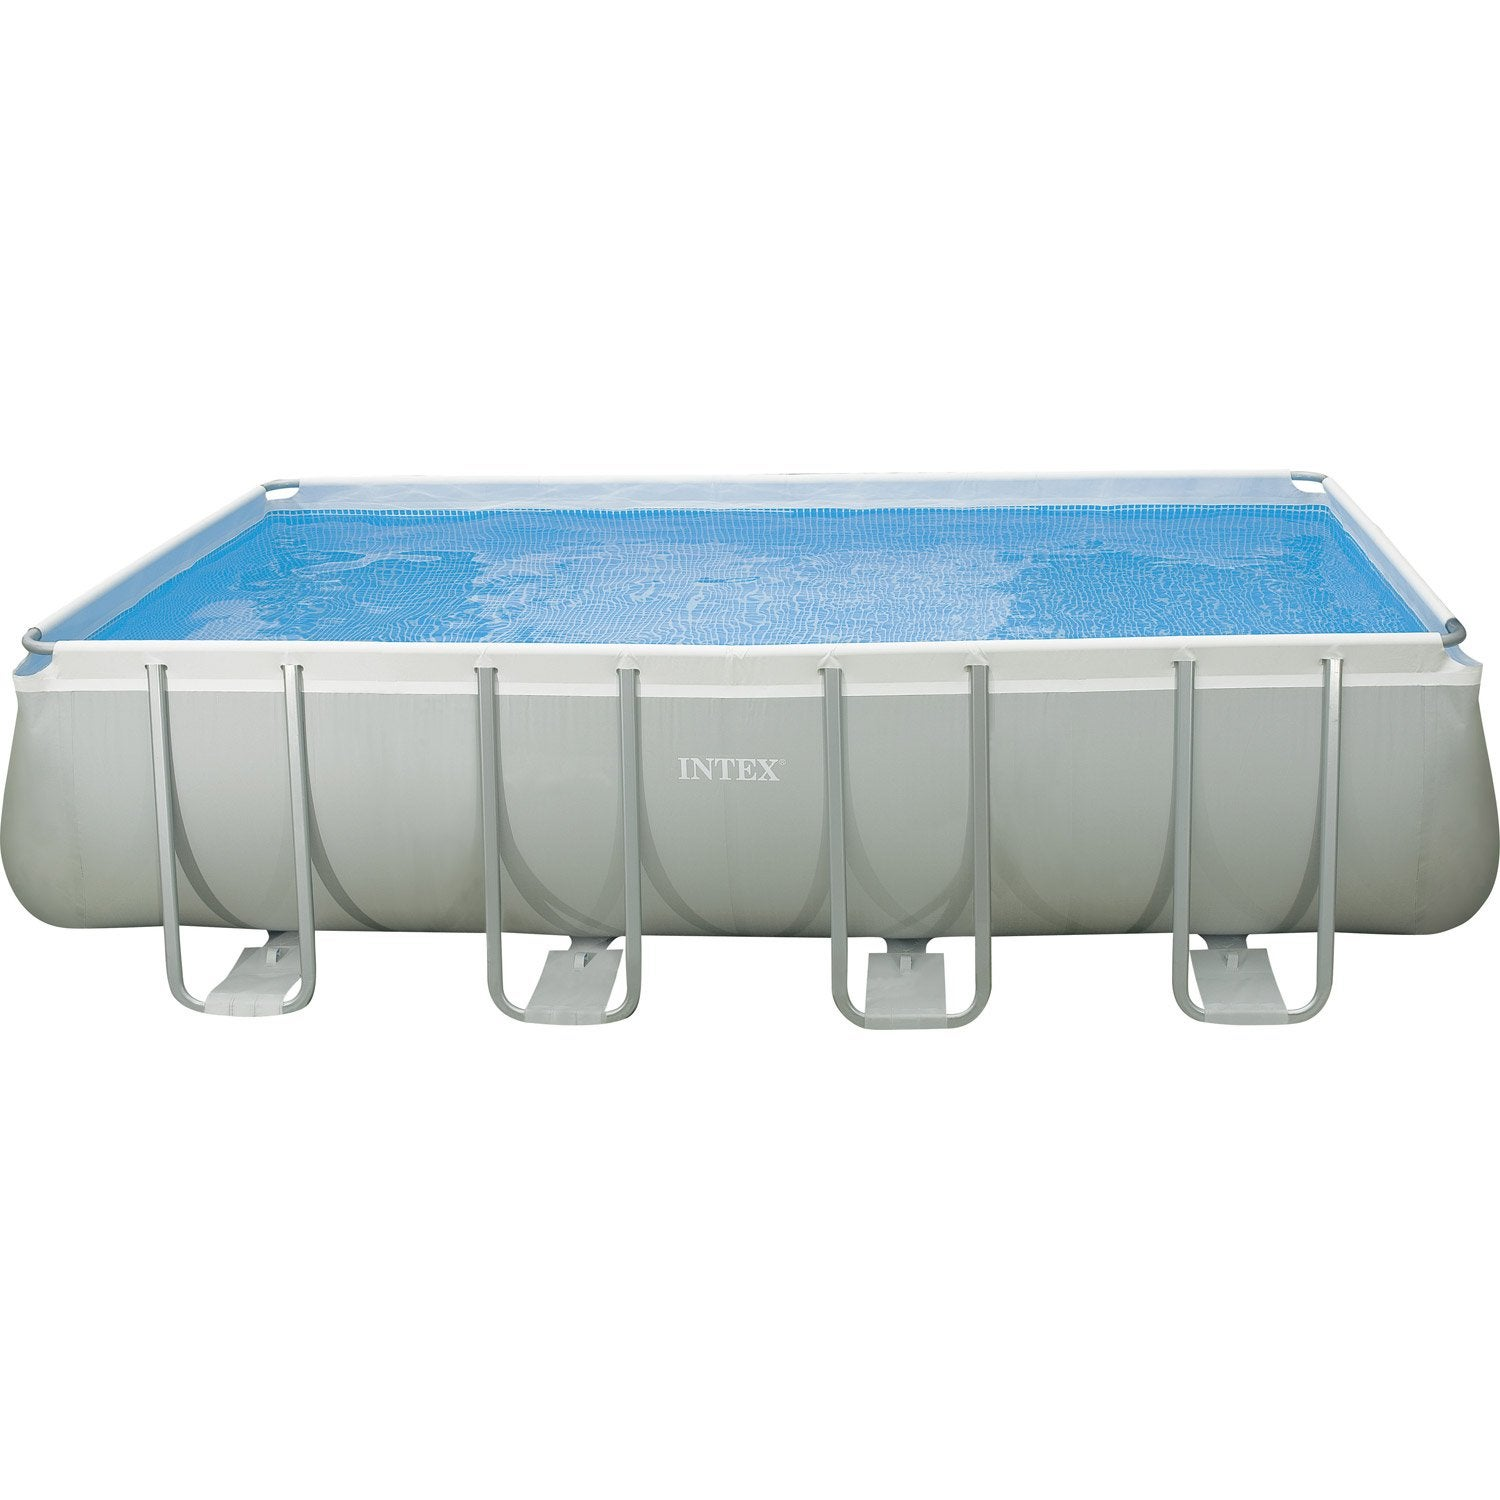 Piscine hors sol autoportante tubulaire intex l x l for Piscine hors sol tubulaire amazon